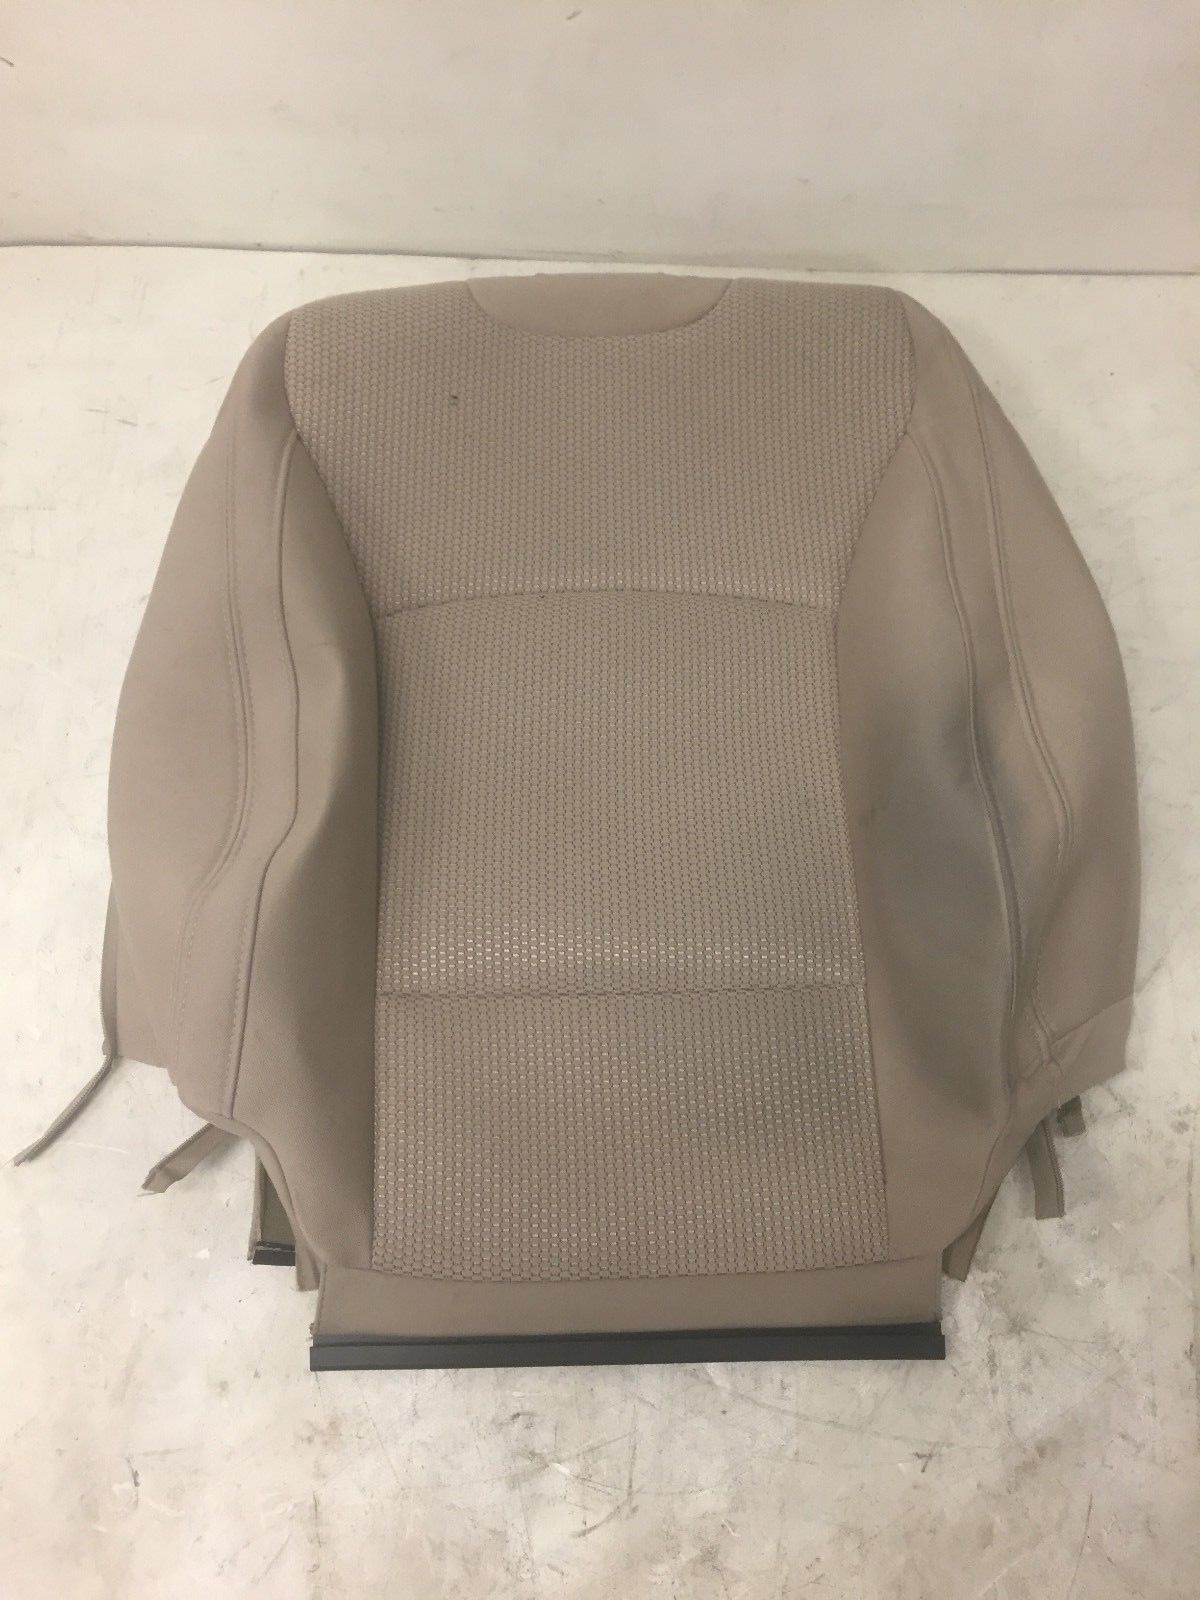 2016 Subaru Outback Front Left Driver Side Upper Cover Original Seat